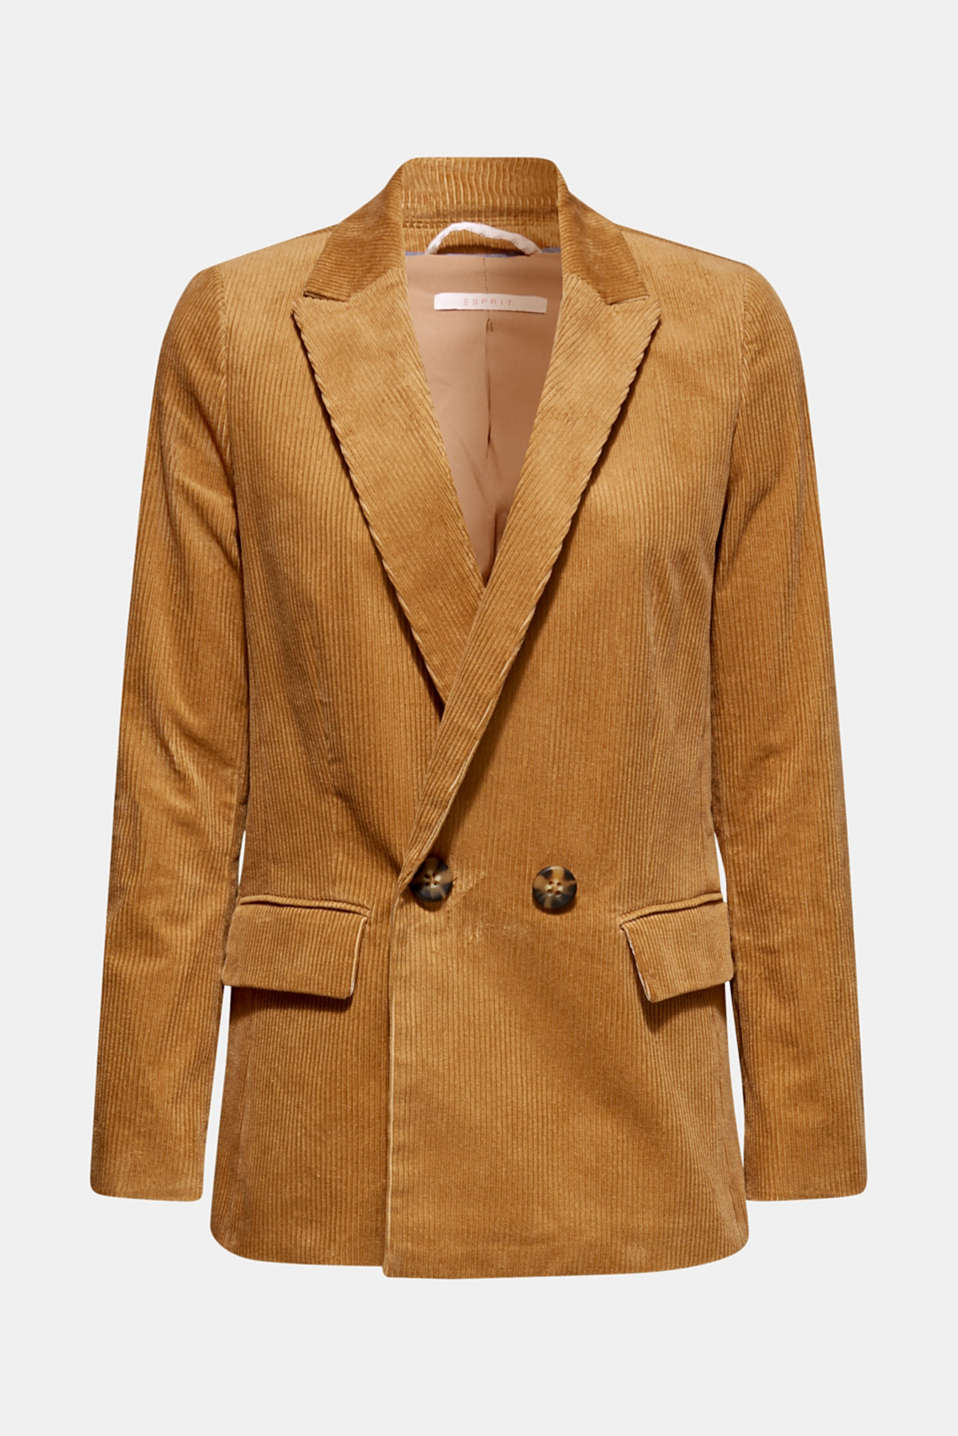 Esprit - CORD Mix + Match Blazer doppiopetto